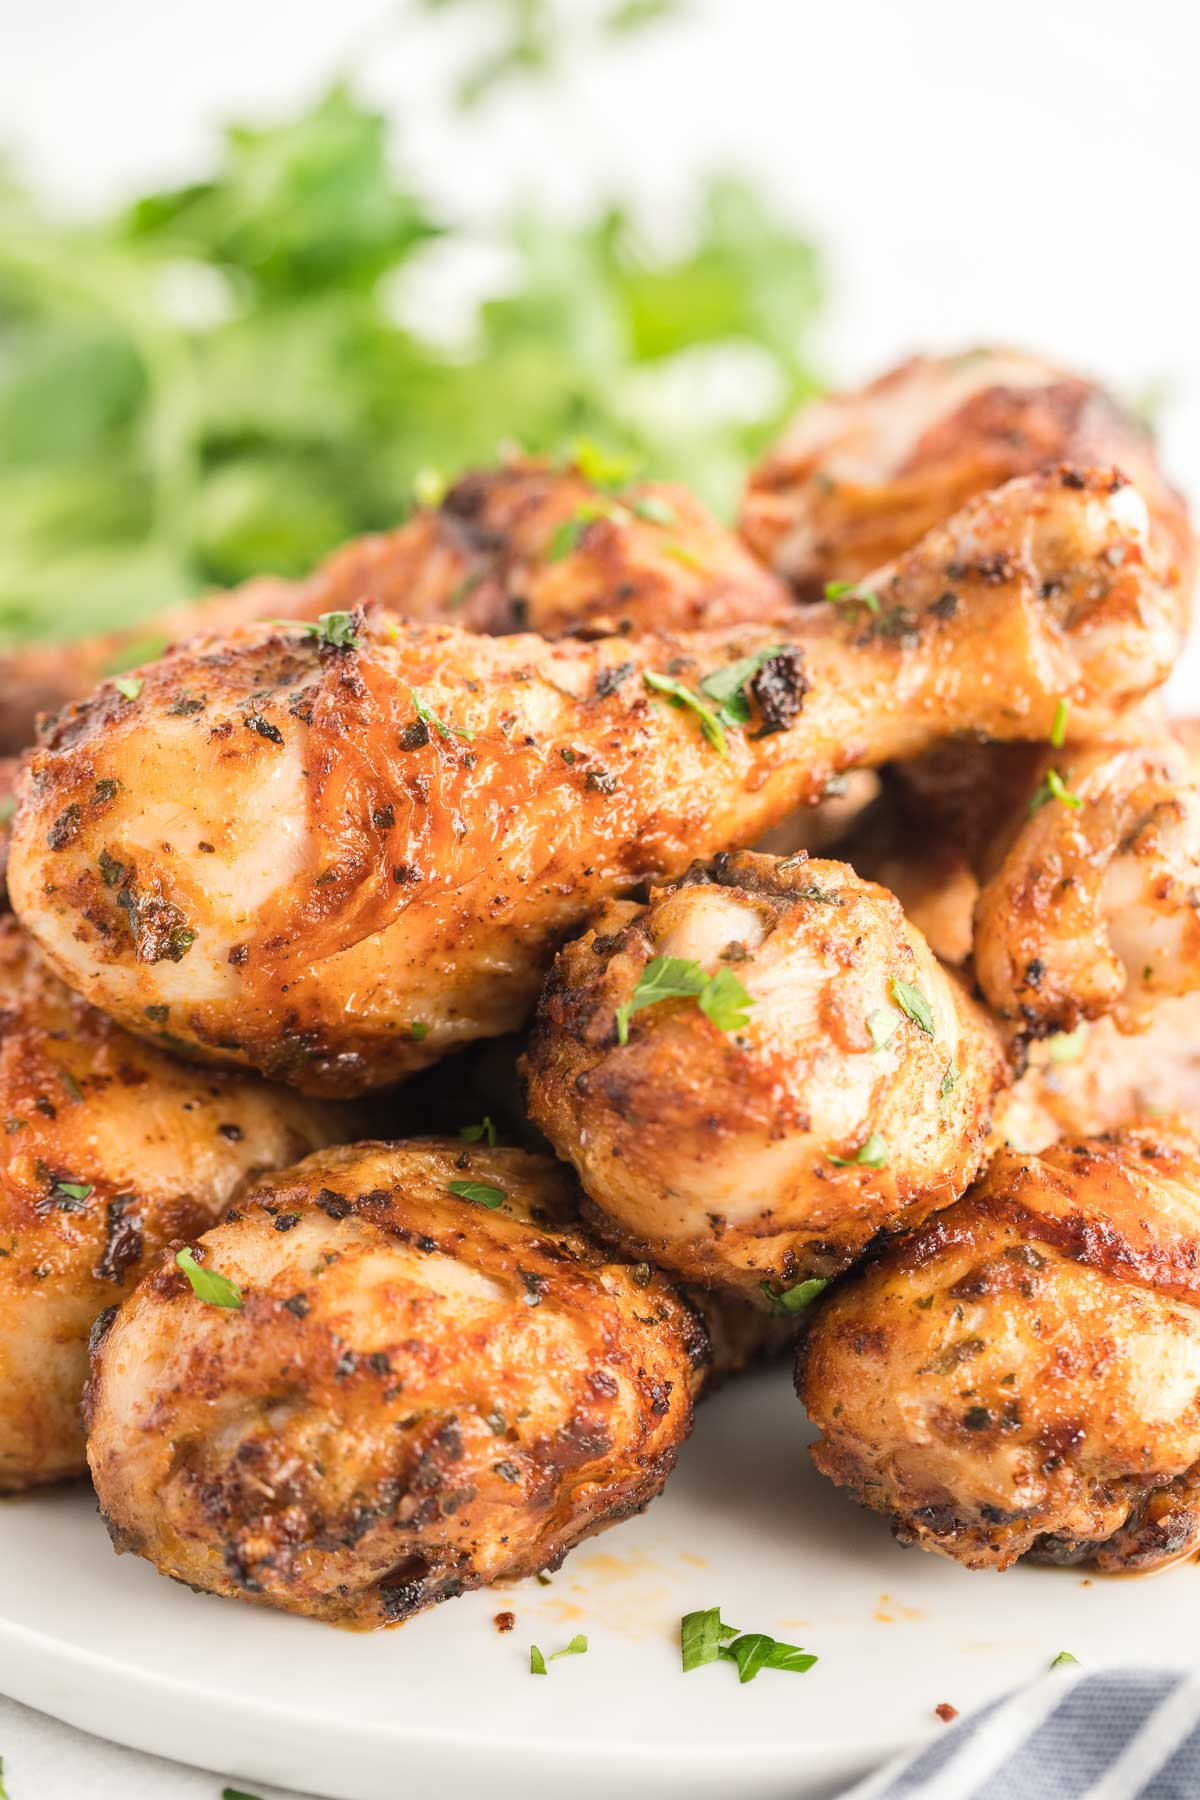 Platter of cooked chicken legs garnished with chopped parsley.